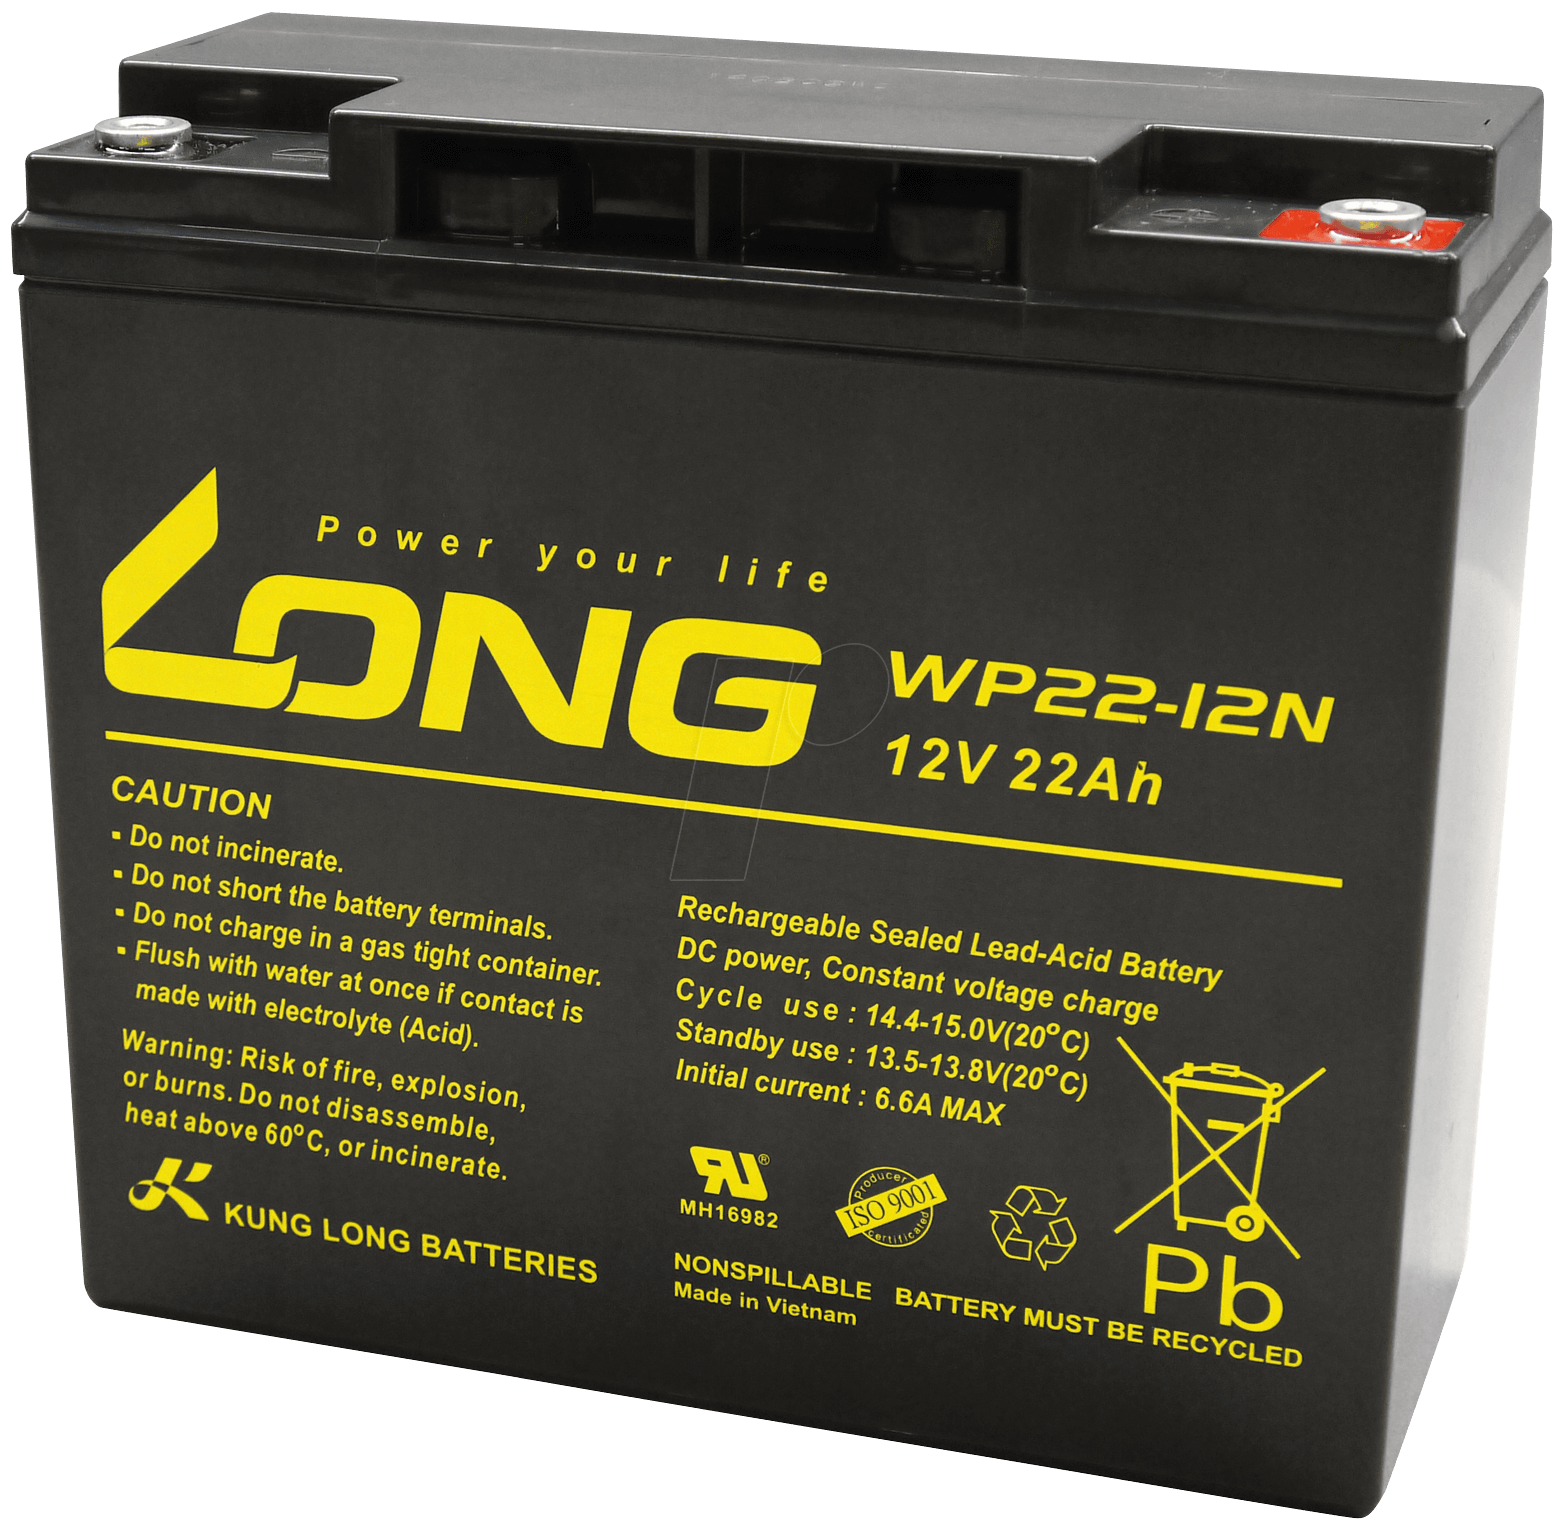 Wp 22 12 Maintenance Free Rechargeable Lead Fleece Battery Ah Re Charging A Car With Computer Power Supply V Kung Long